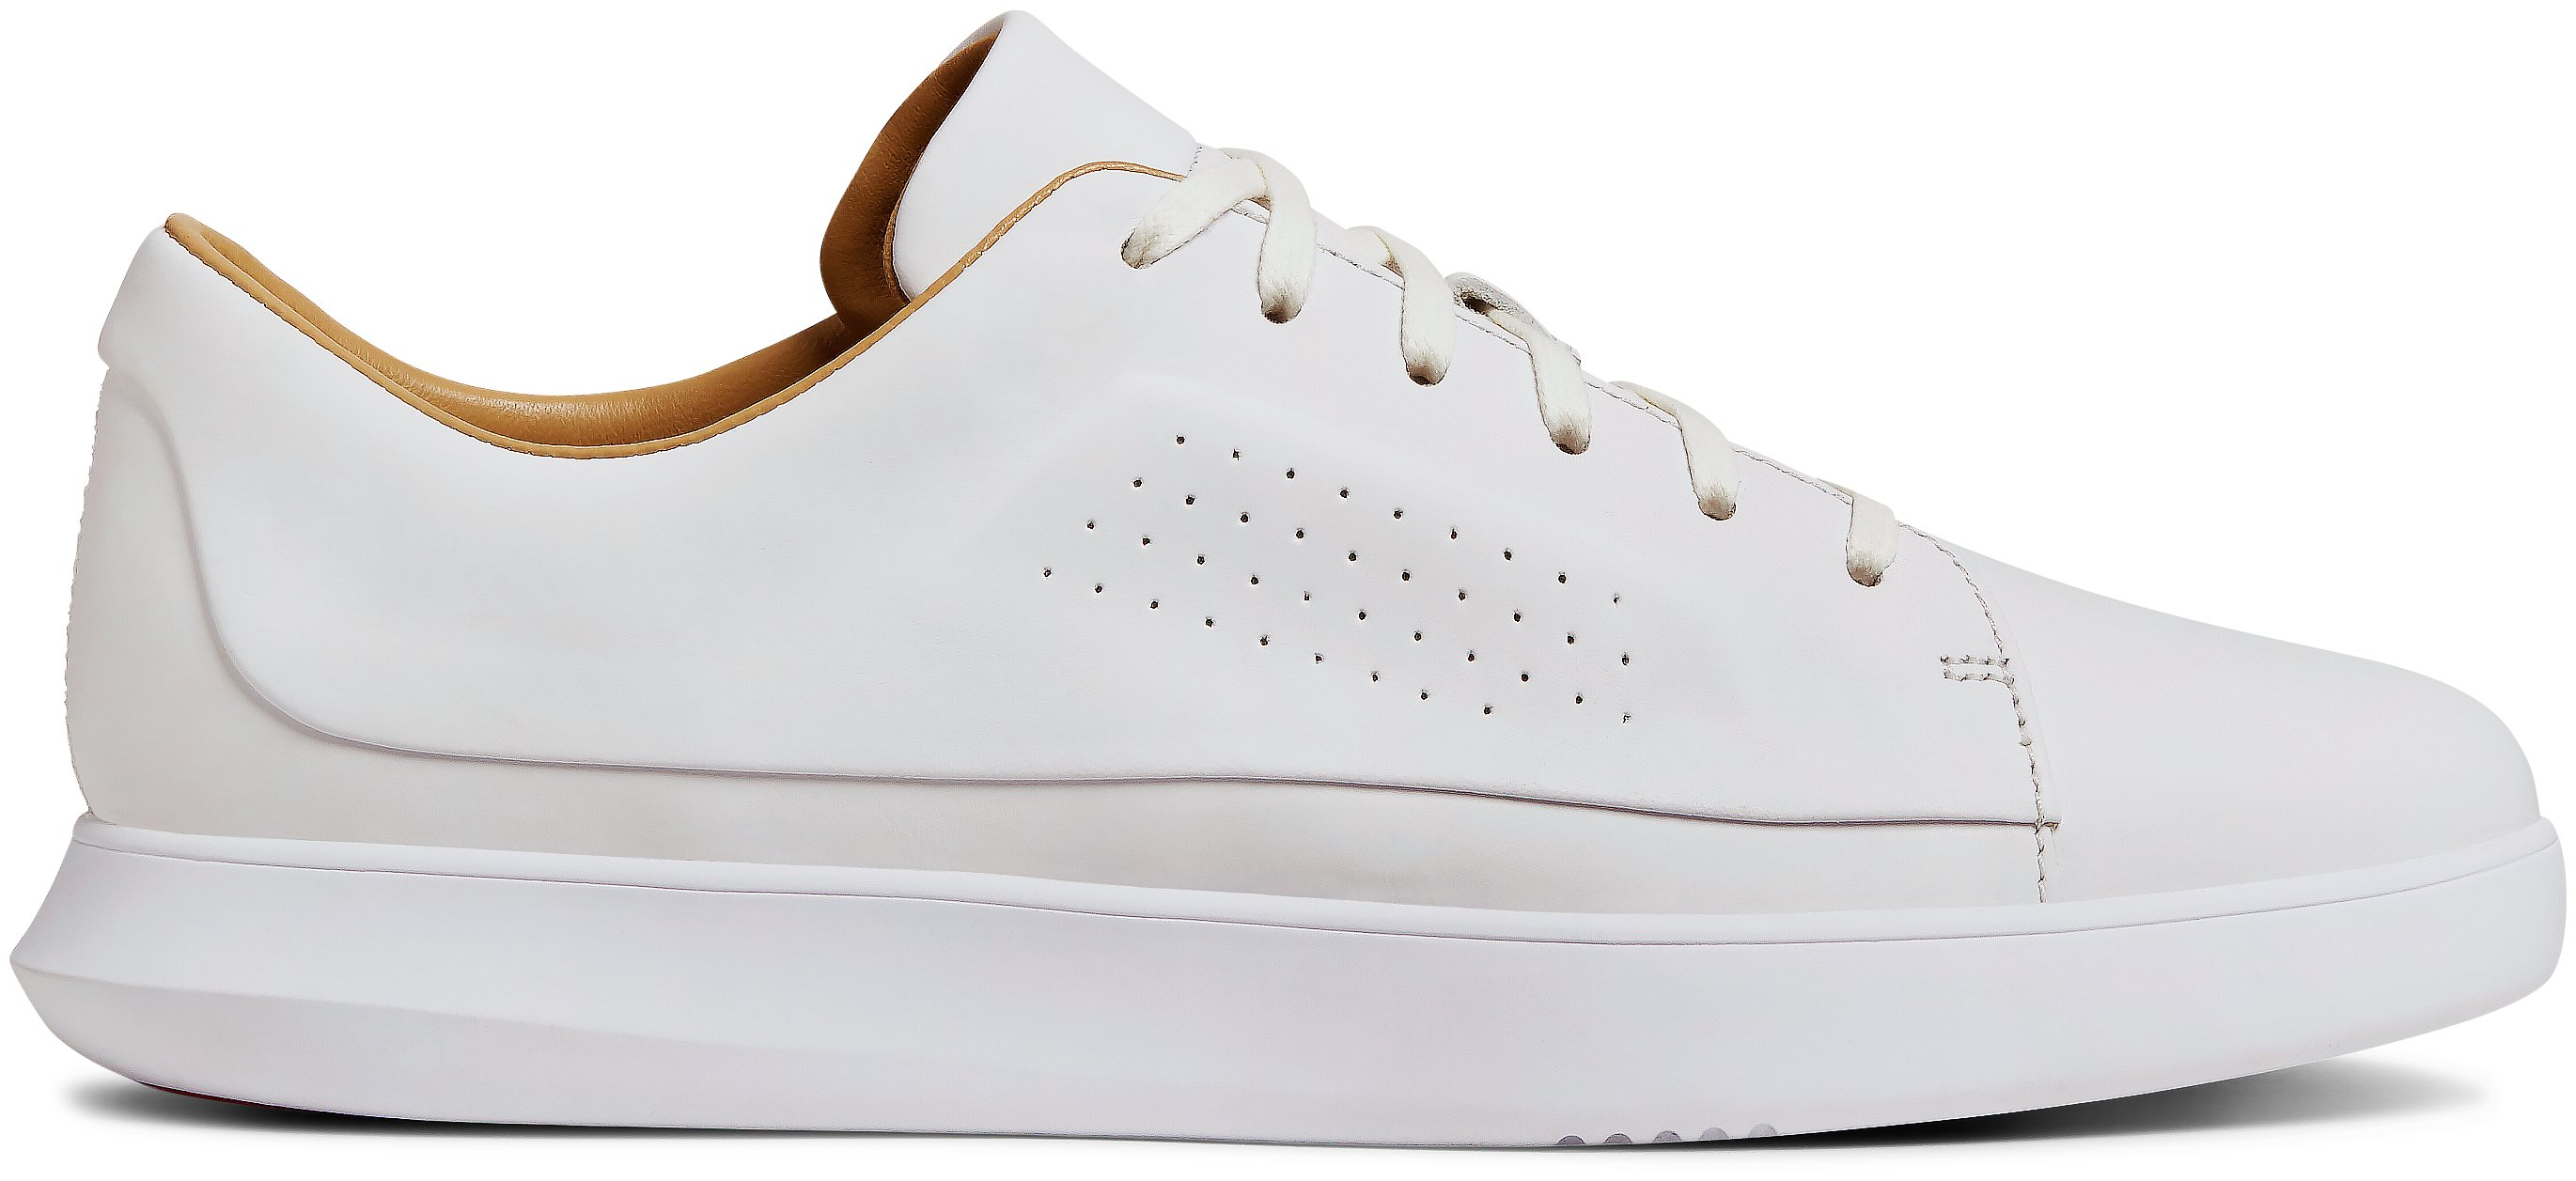 Men's UAS Club Low - Leather Shoes, White,